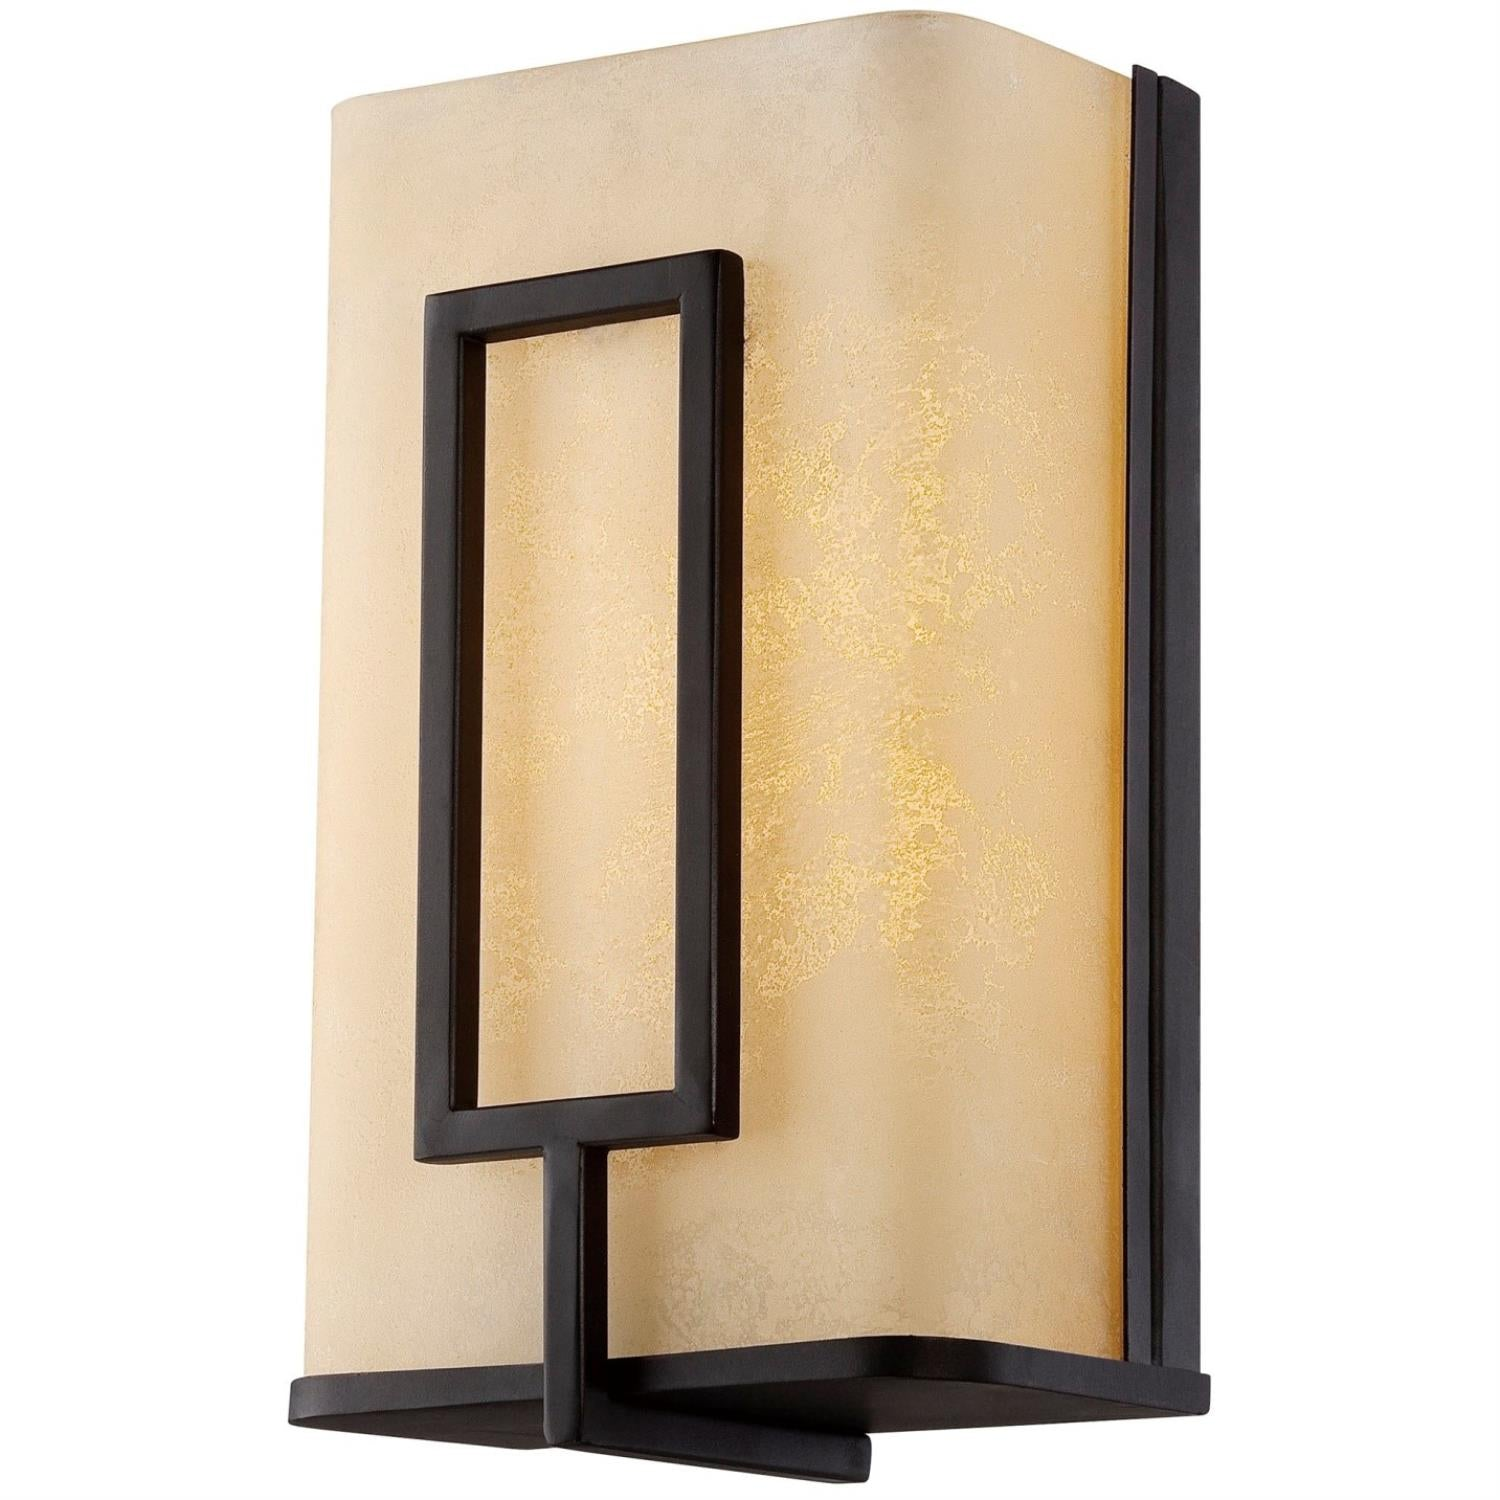 SUNLITE 12w Wall Sconce in Copper bronze finish - 3000K